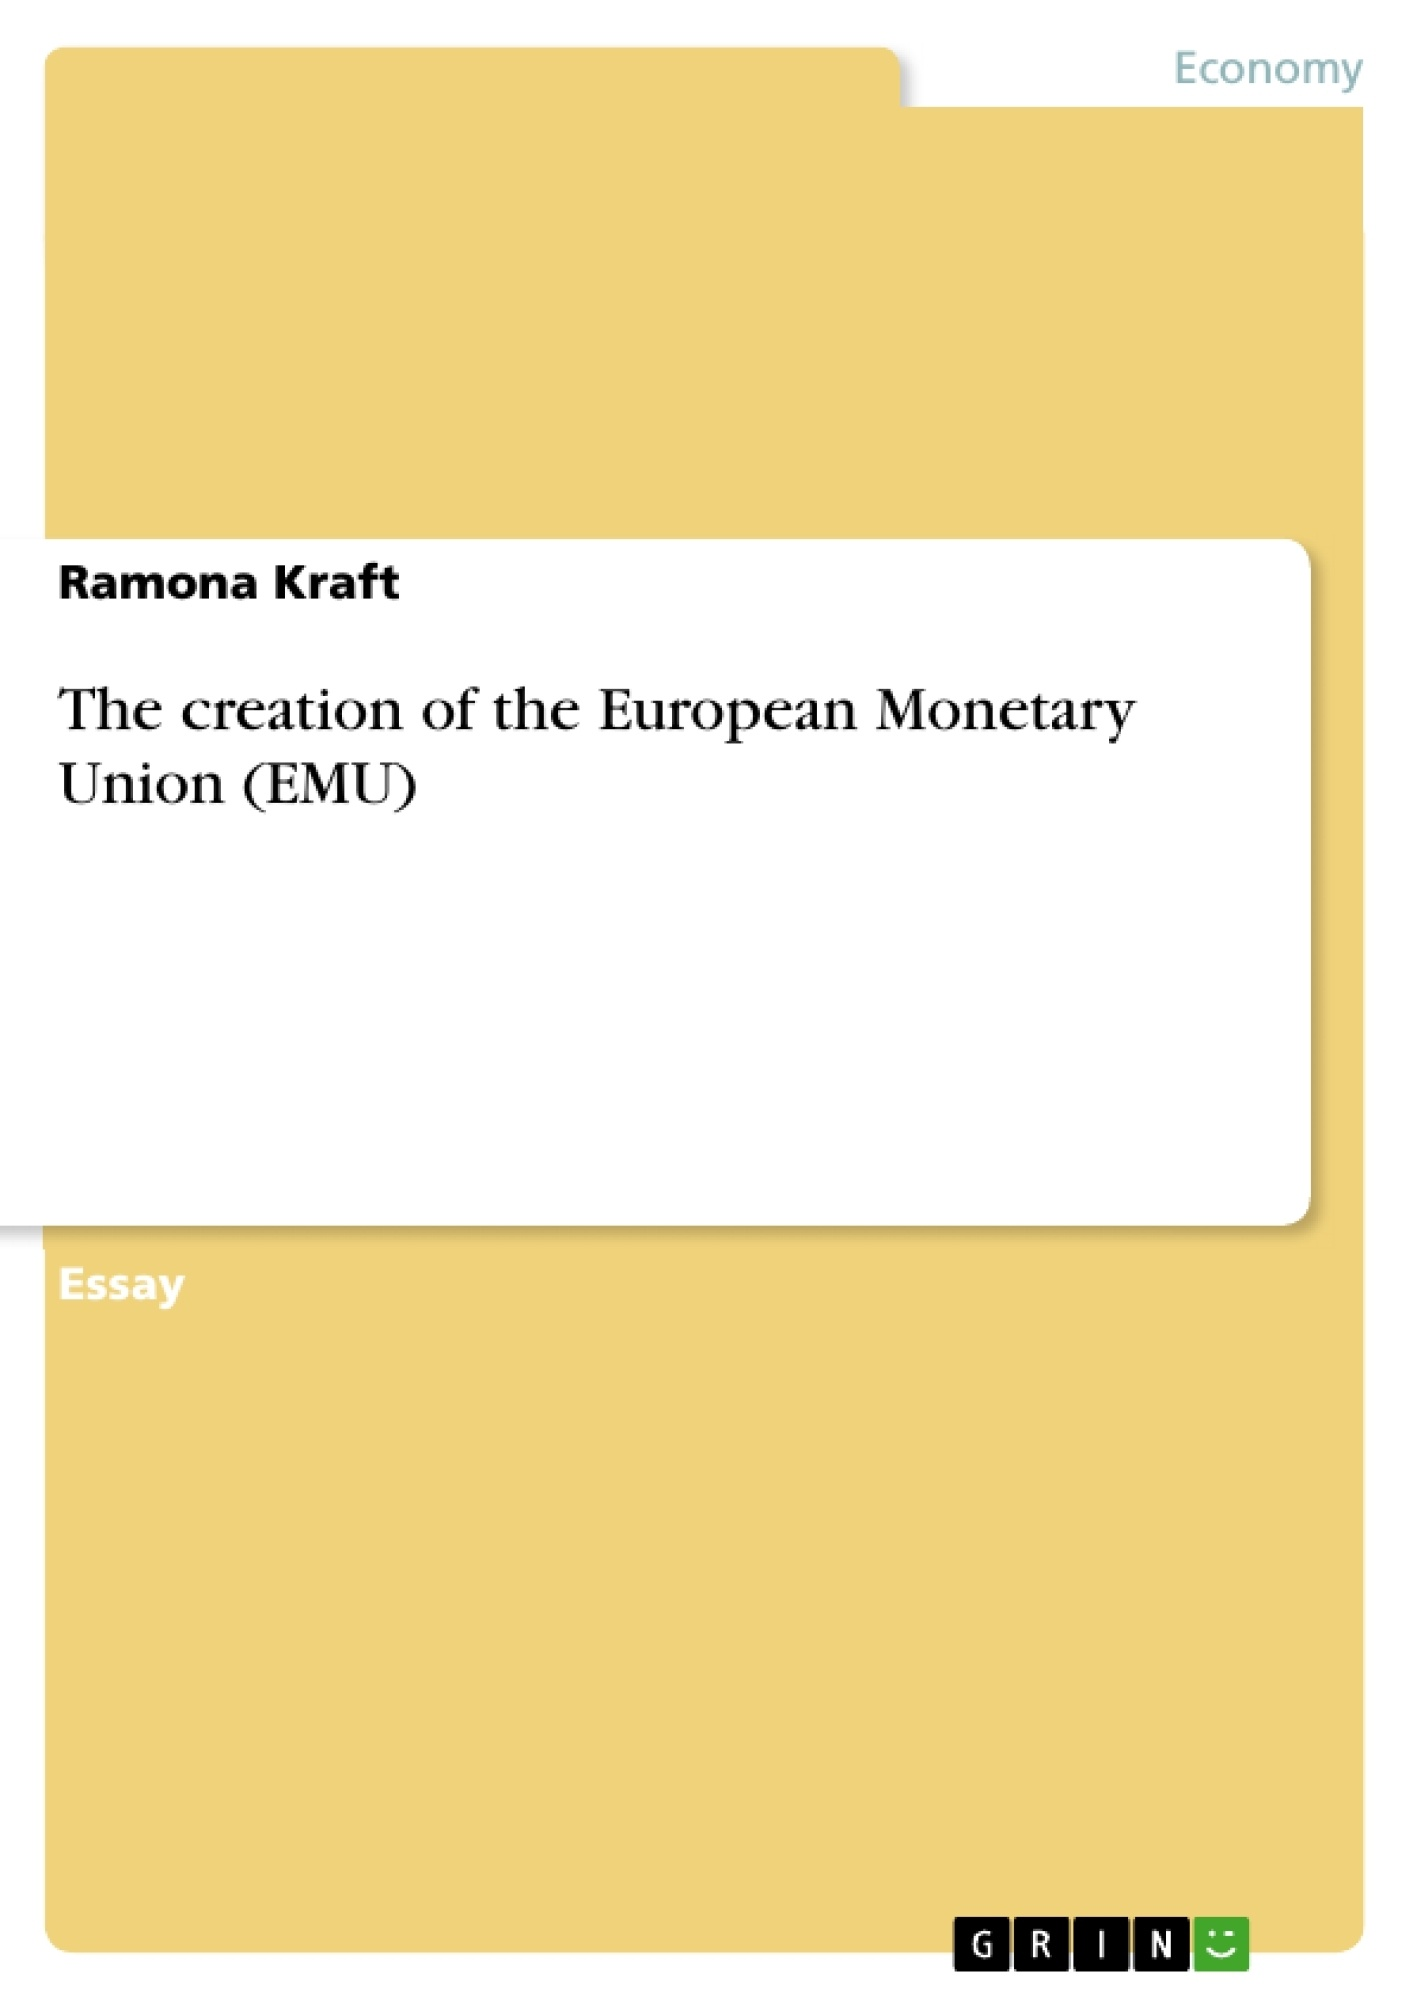 the european monetary union essay The european economic and monetary union (emu) is an agreement between participating european nations to share a single currency, the euro, and a single economic.